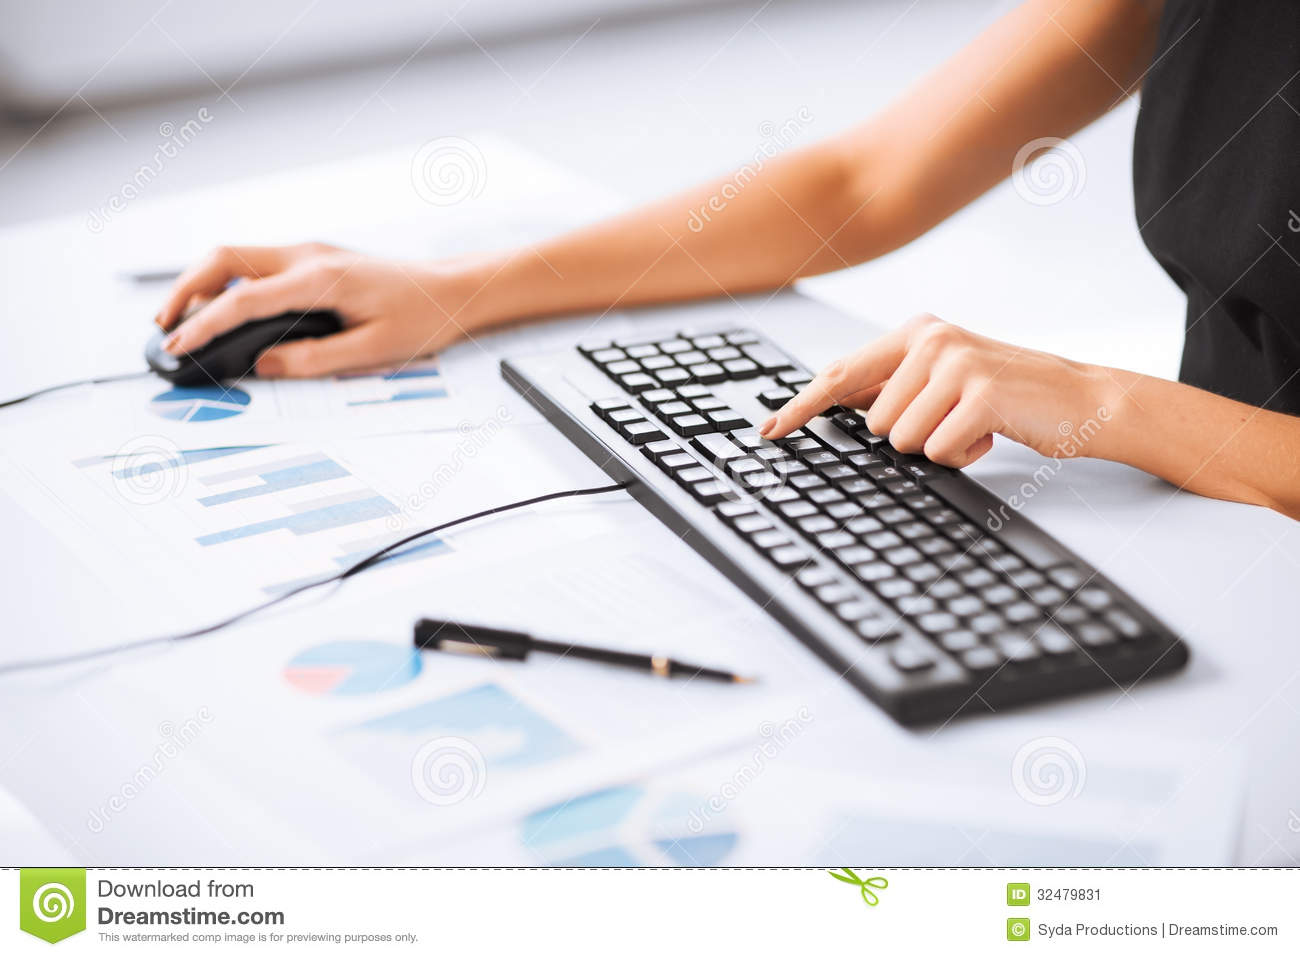 Typing On Keyboard Woman hands typing on keyboard